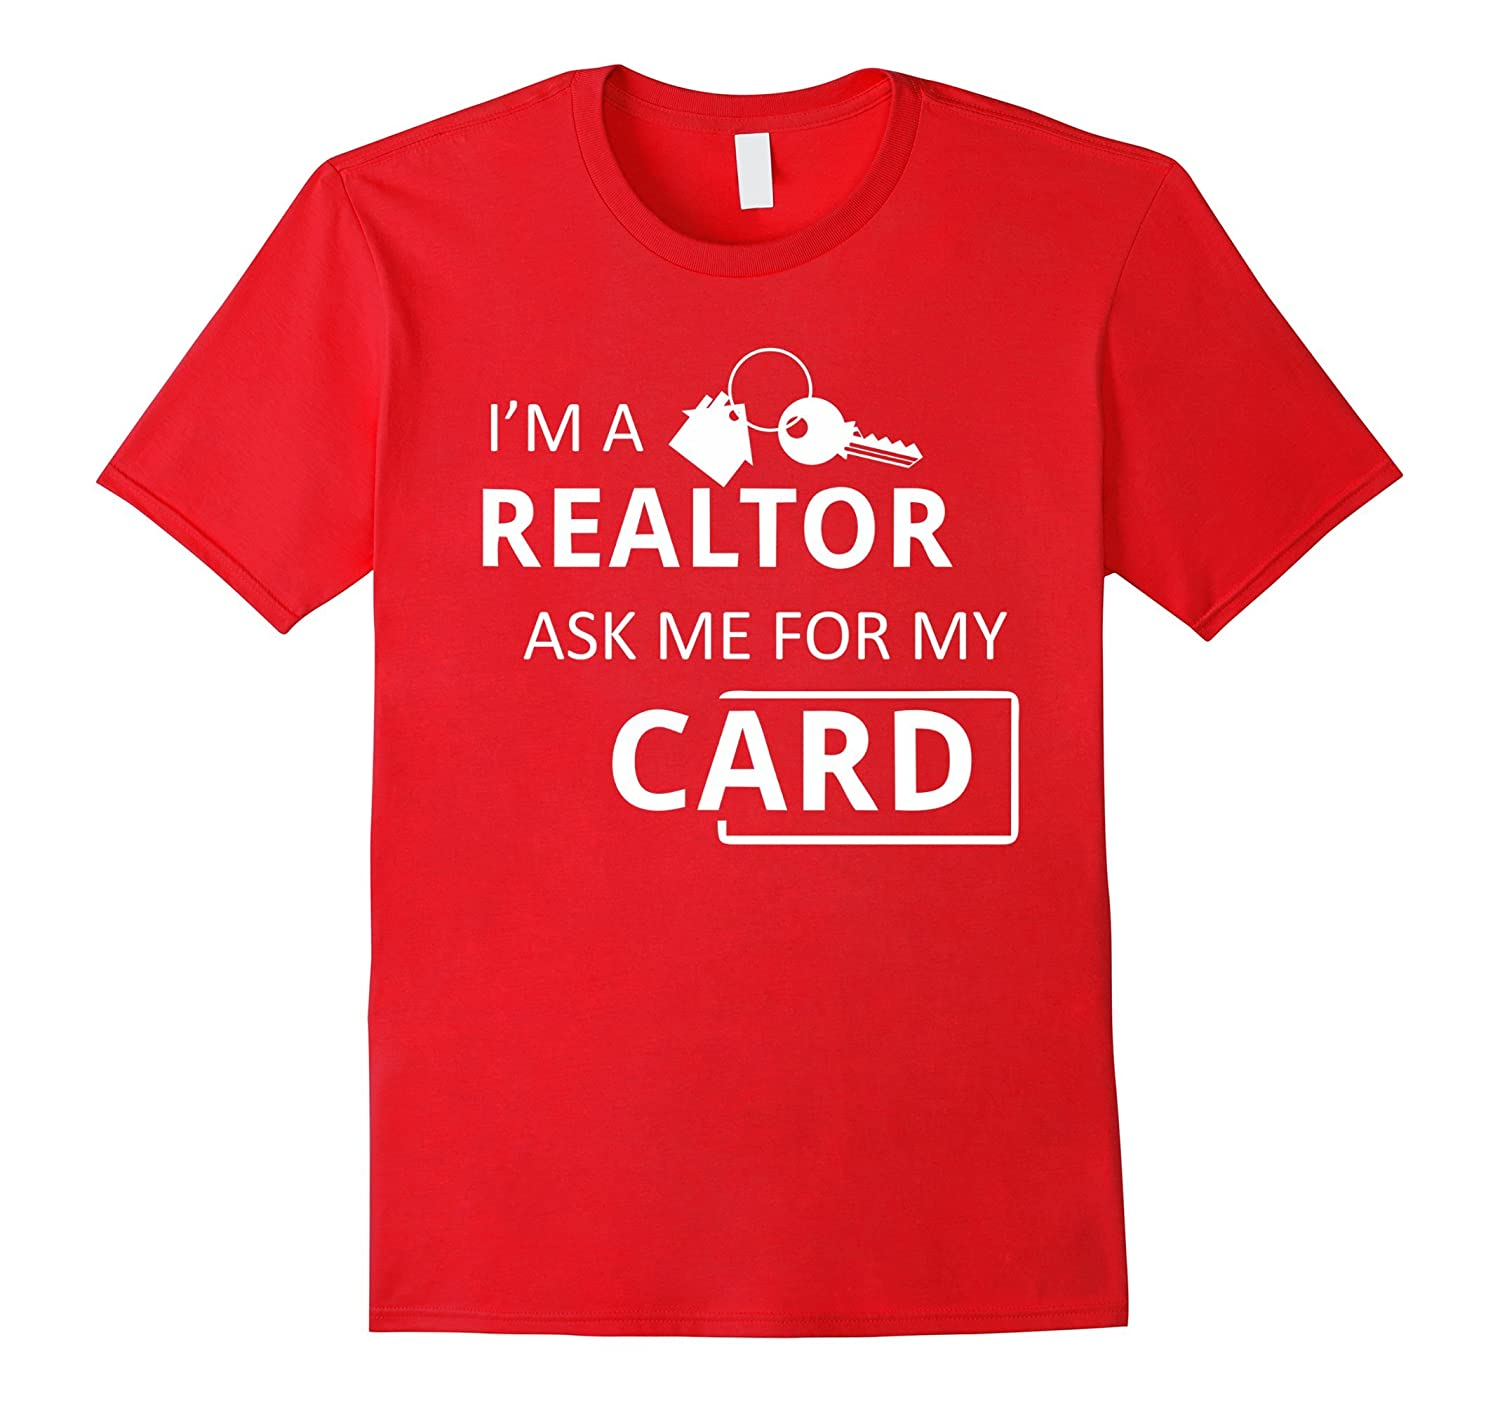 Real Estate Agent -I'm A Realtor Ask Me for My Card Shirt